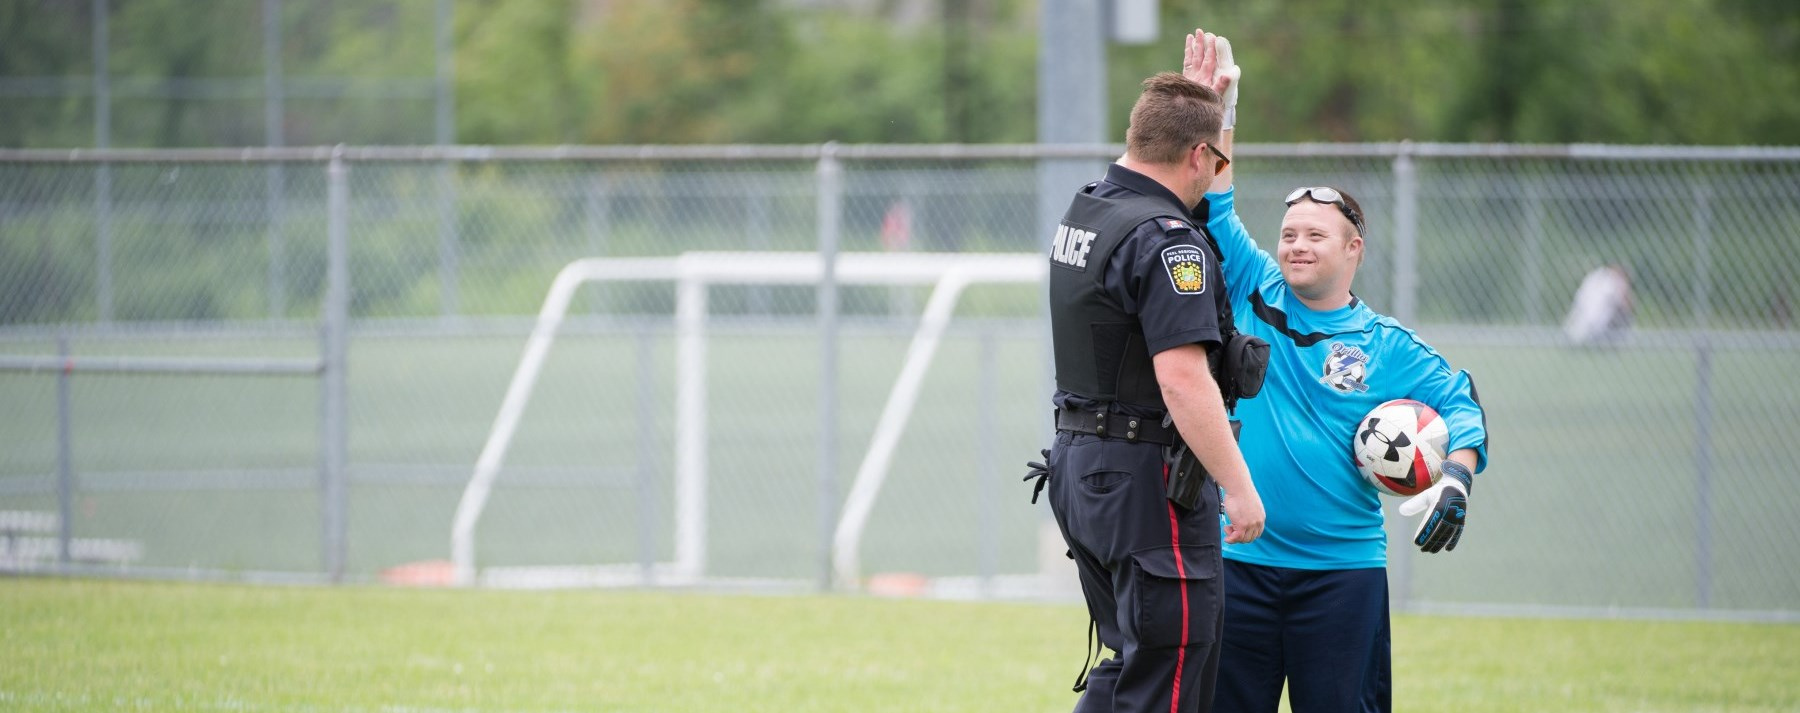 officer giving high five to soccer player